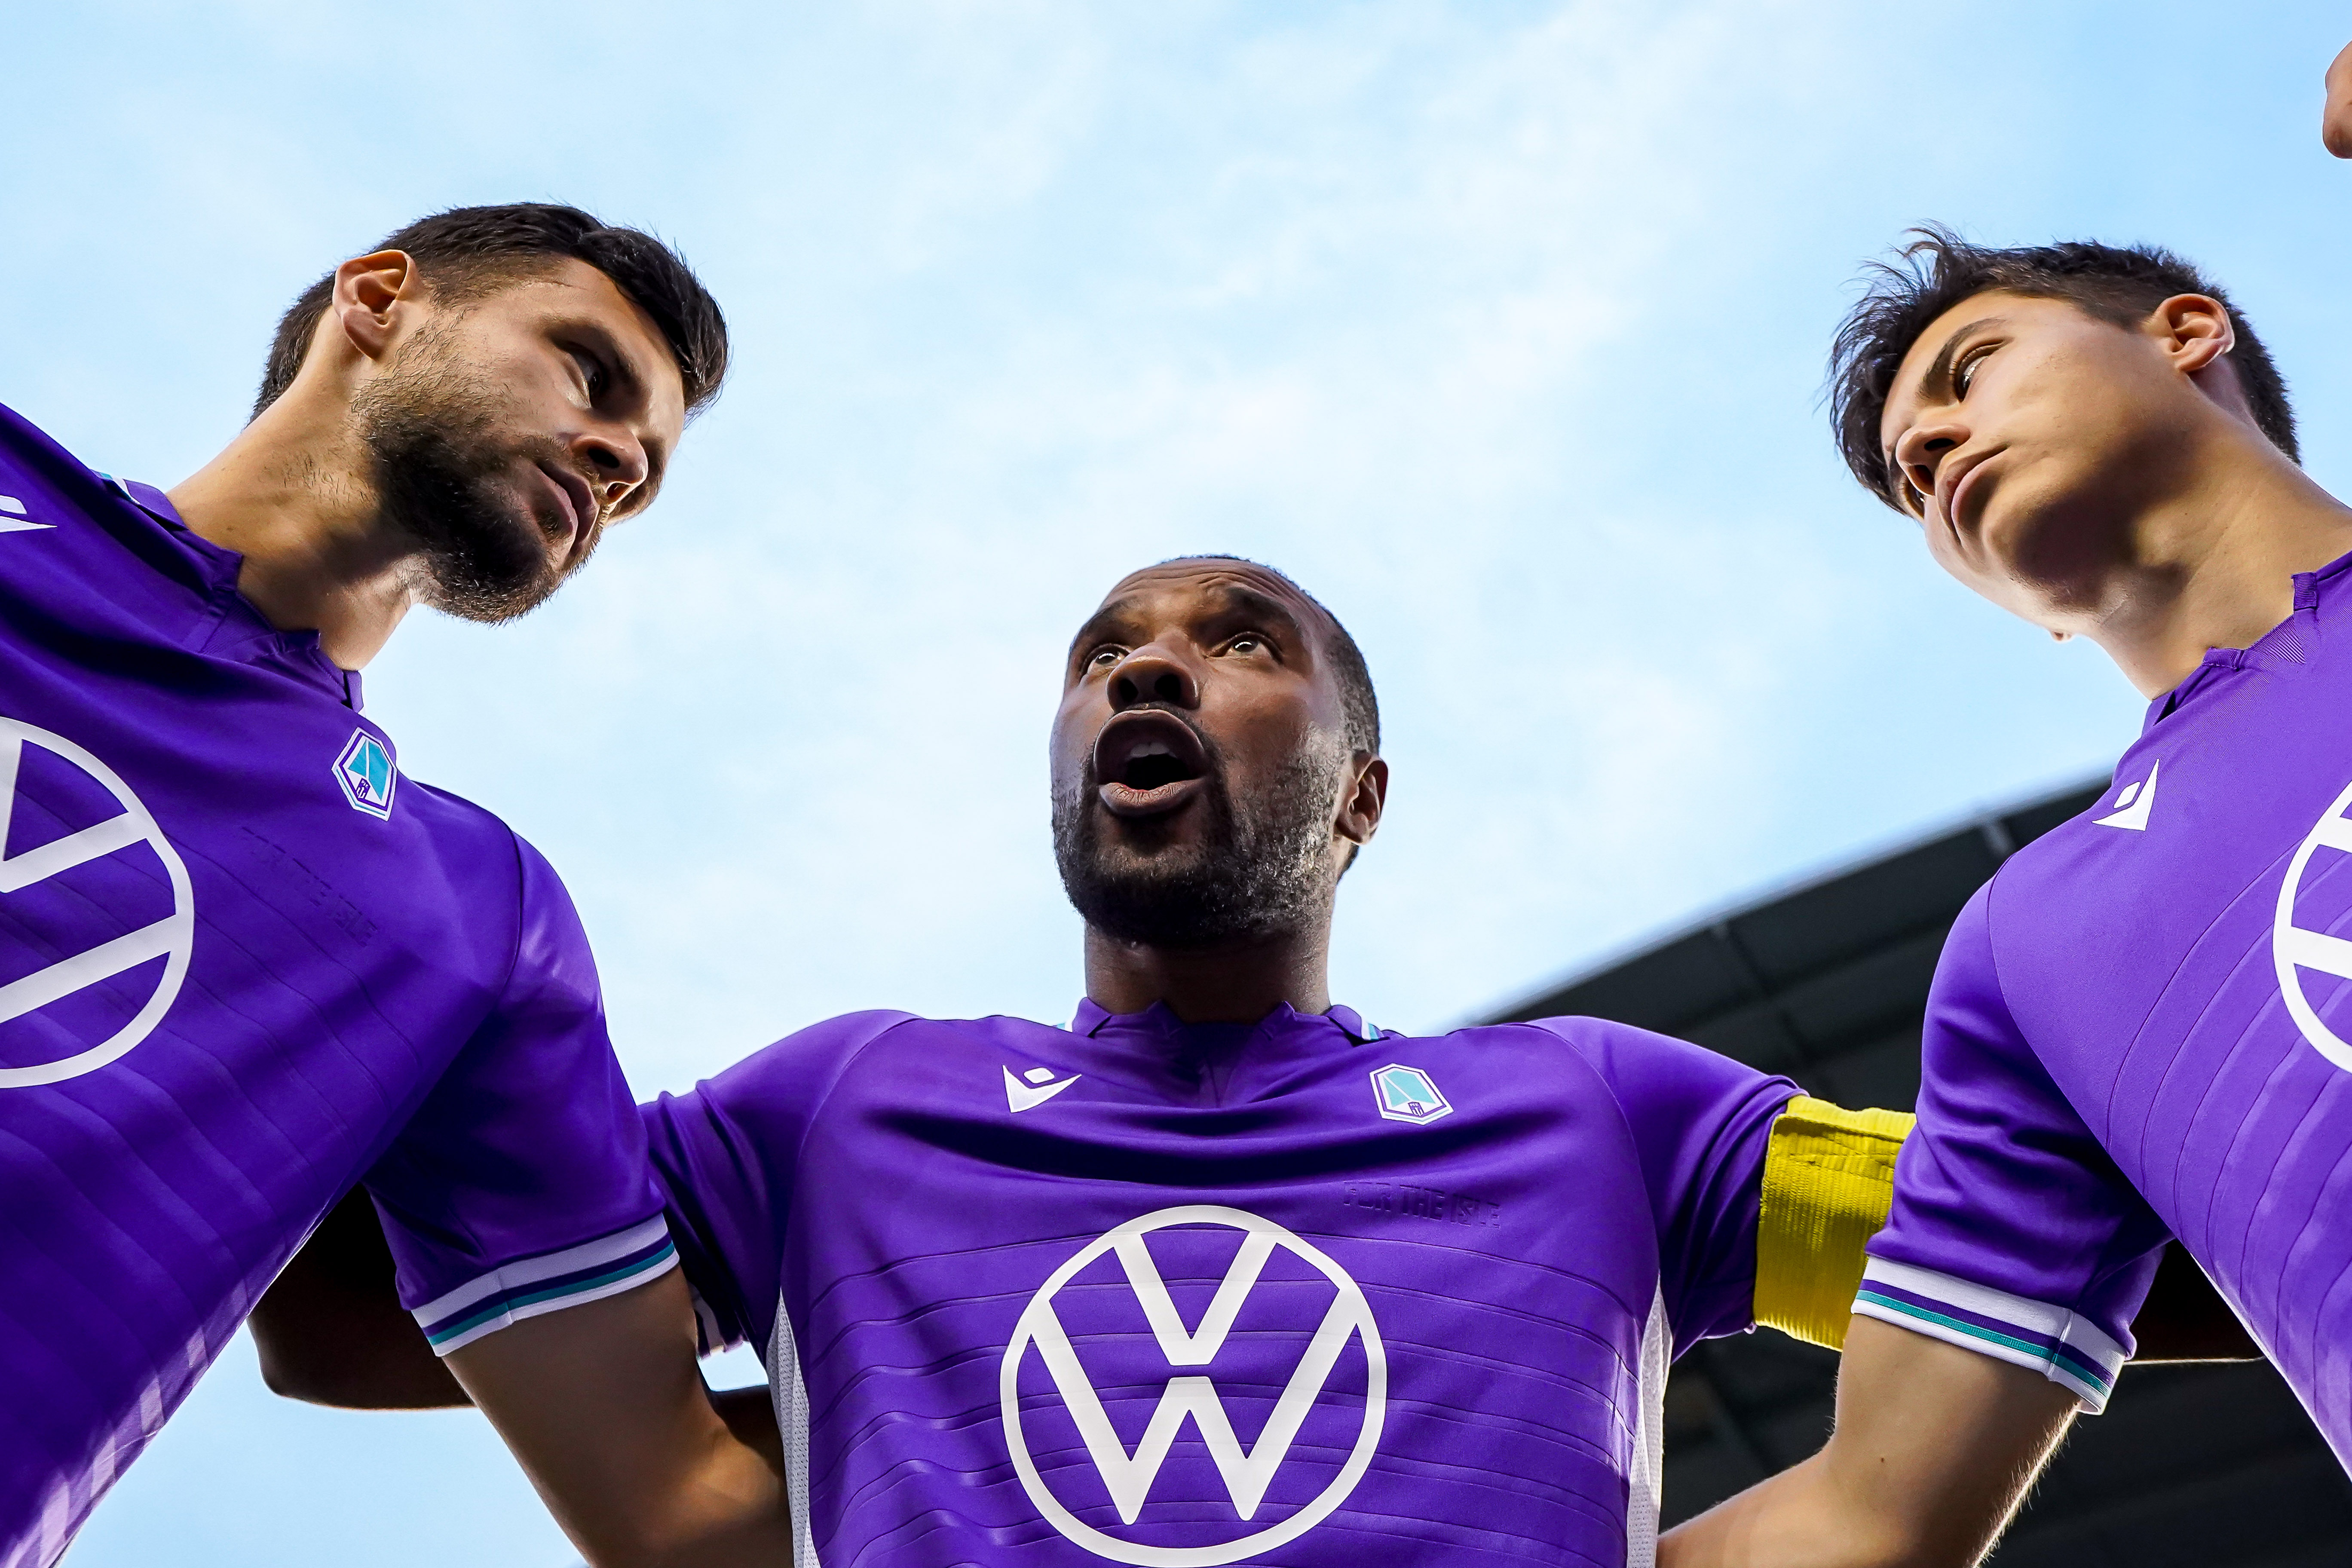 July 17, 2021. Pacific FC vs Forge FC. Pre-Game. Jamar Dixon of Pacific FC leads the team huddle.